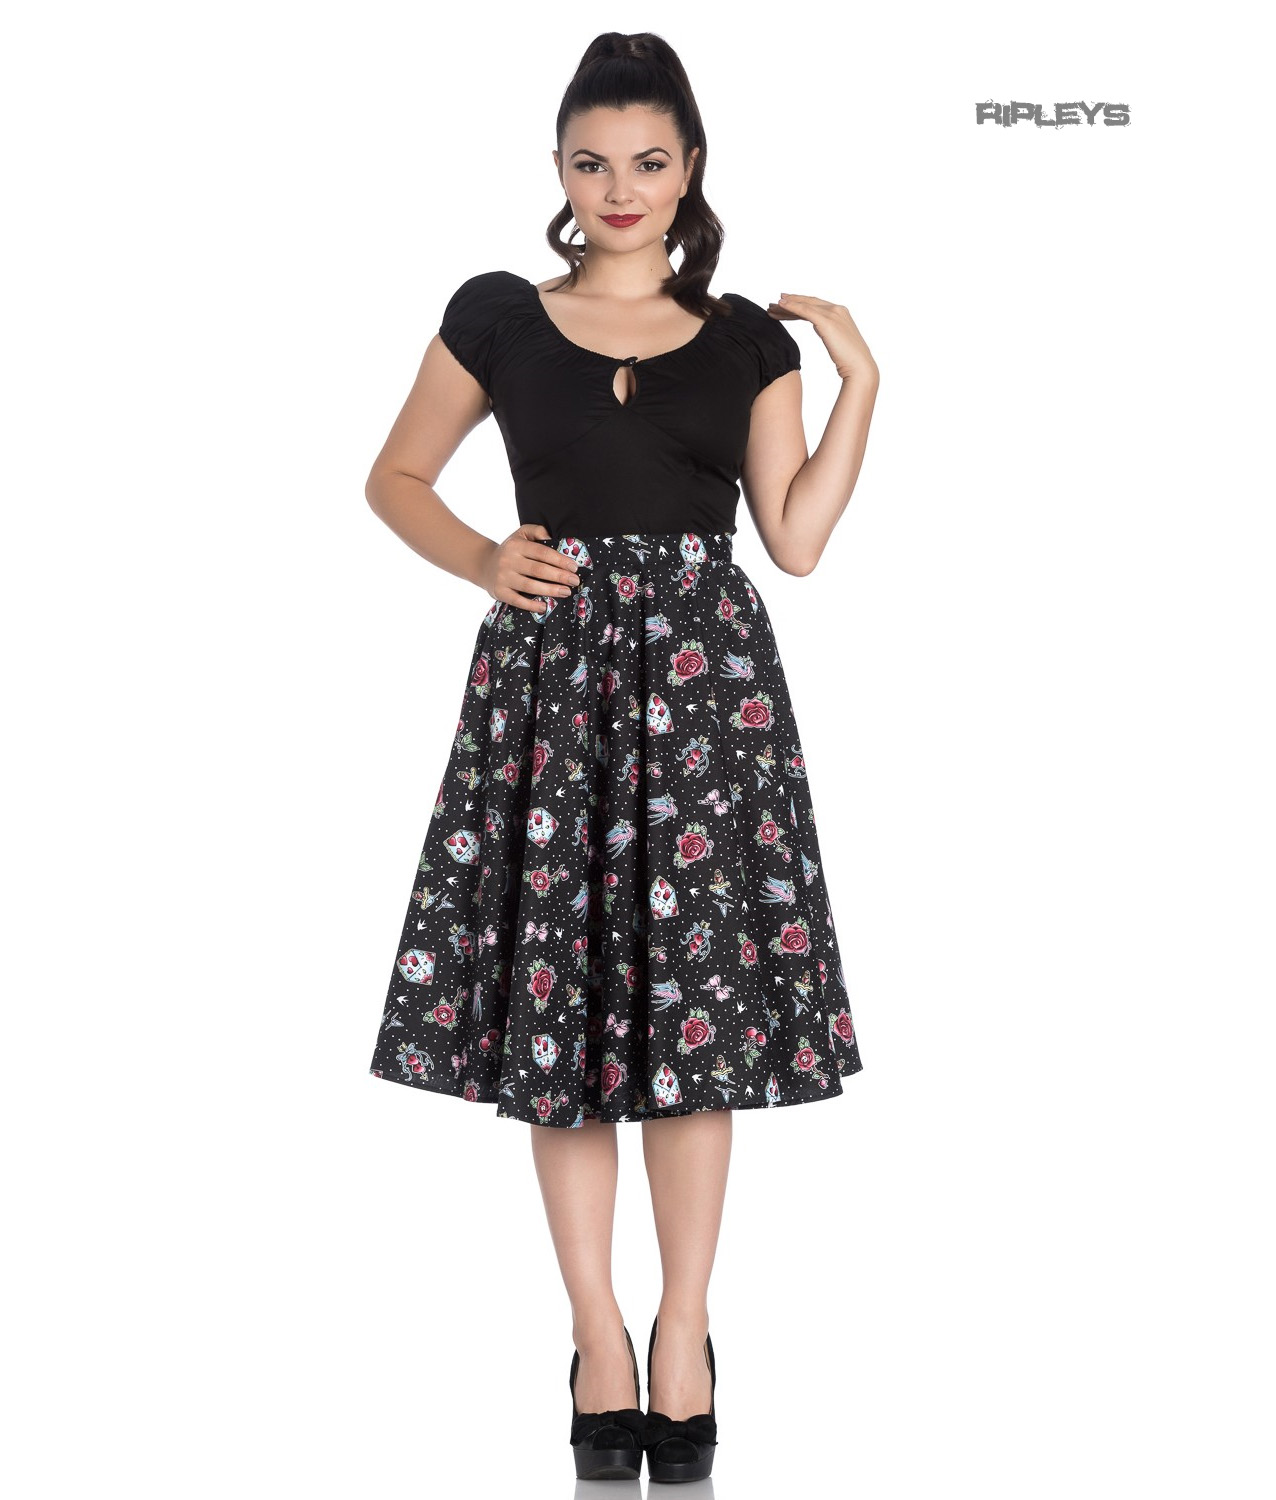 d11e413df053 Sentinel Hell Bunny 50s Skirt Vintage Rockabilly Cherry Swallow STEVIE  Tattoo All Sizes